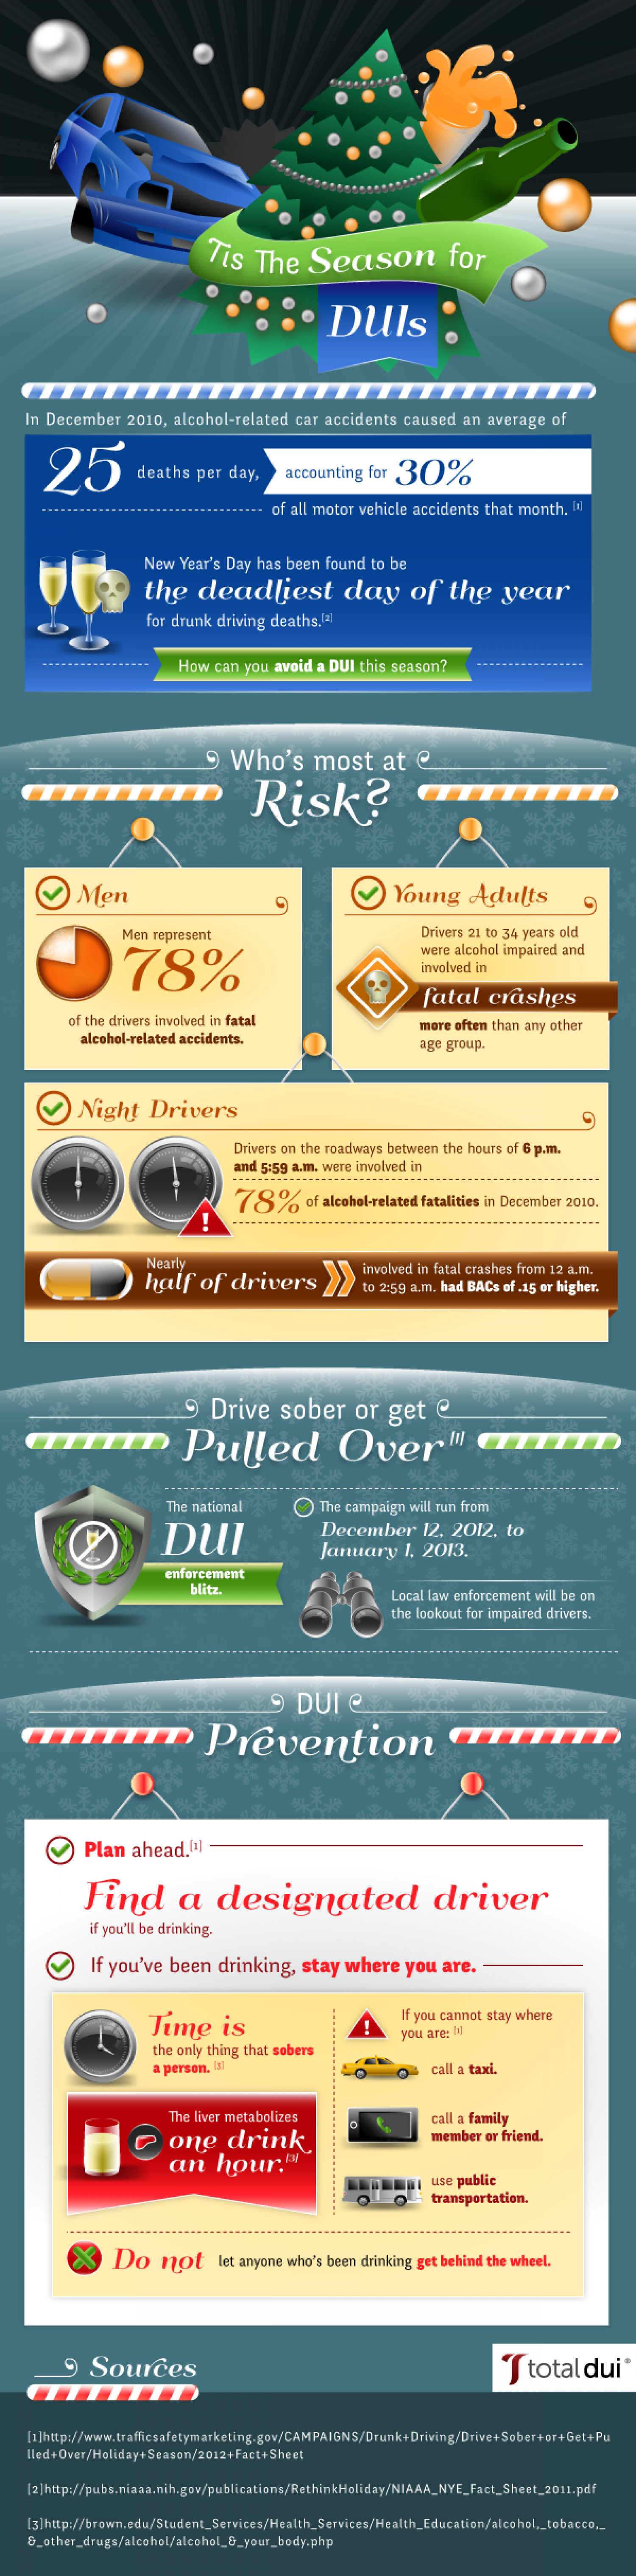 'Tis The Season for DUIs Infographic